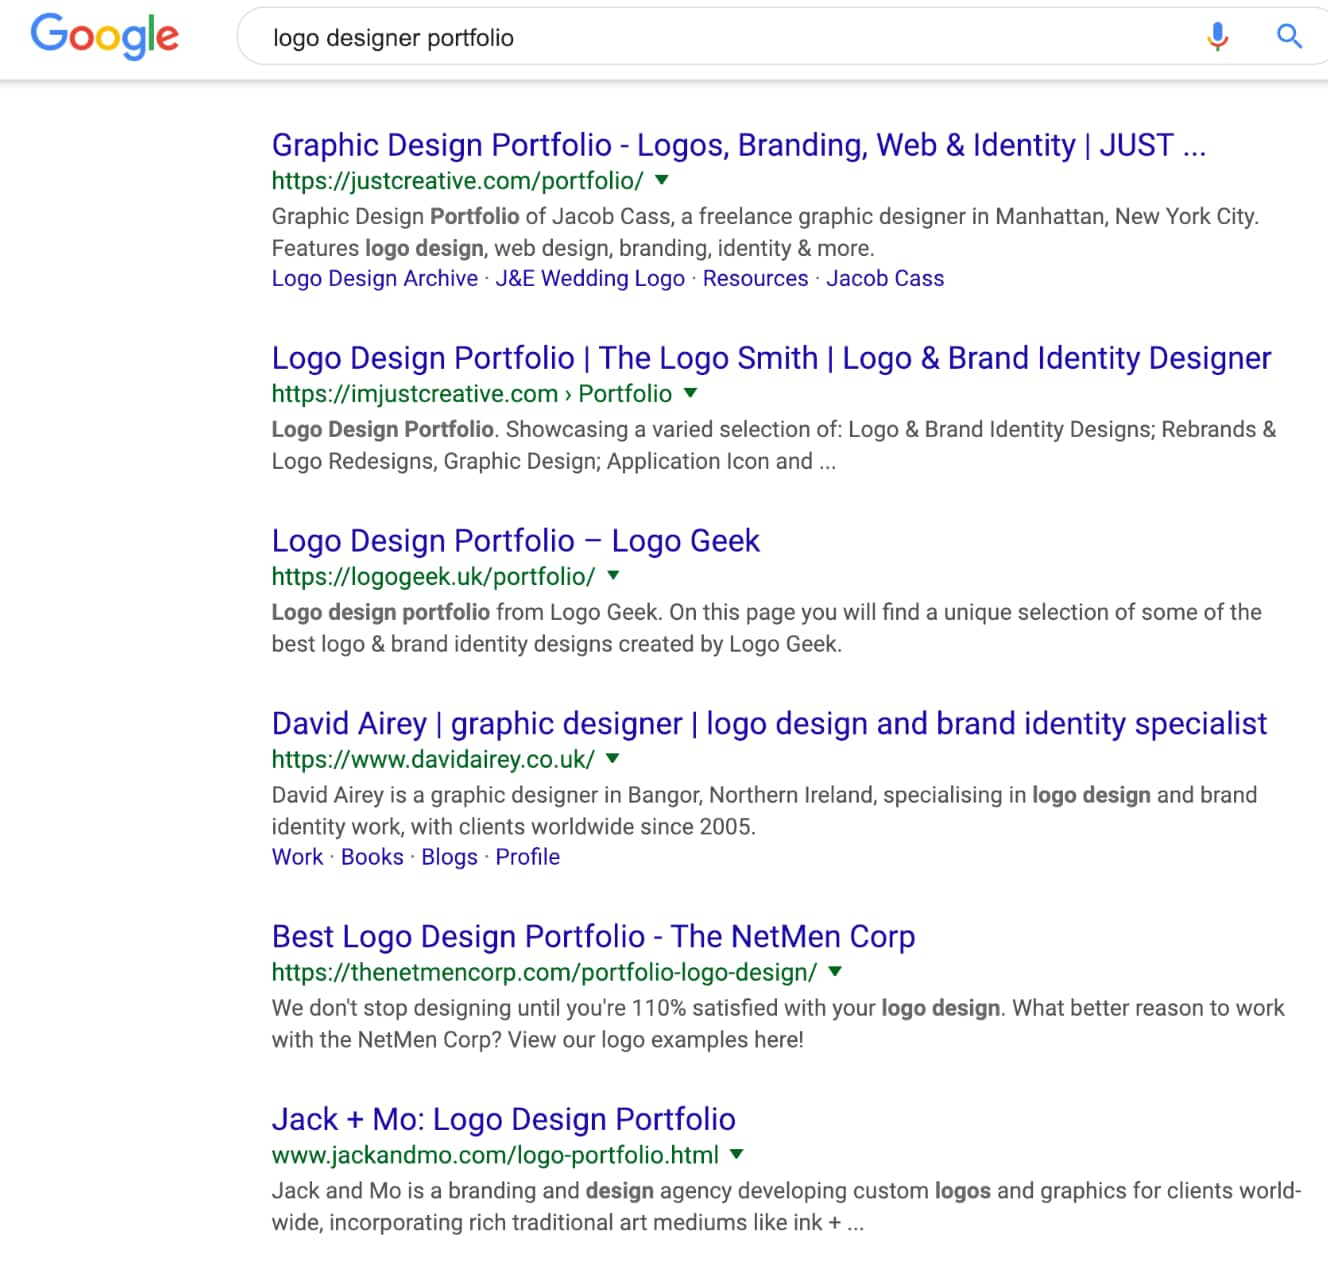 Google 1st page search results for 'logo designer portfolio'